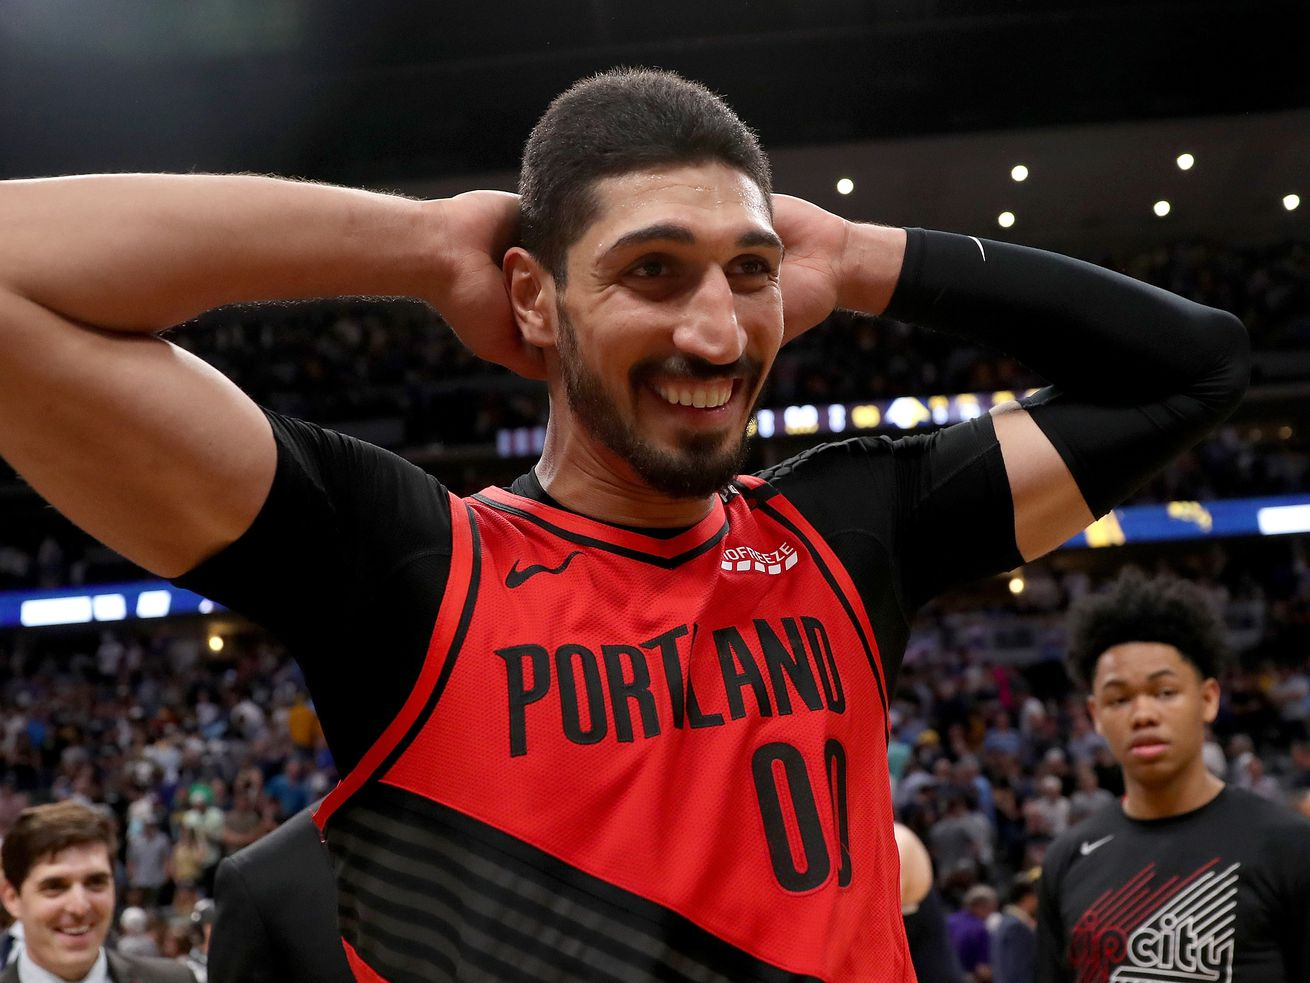 Enes Kanter on May 12, 2019, after the Portland Trail Blazers beat the Denver Nuggets in the NBA Western Conference Semifinals.